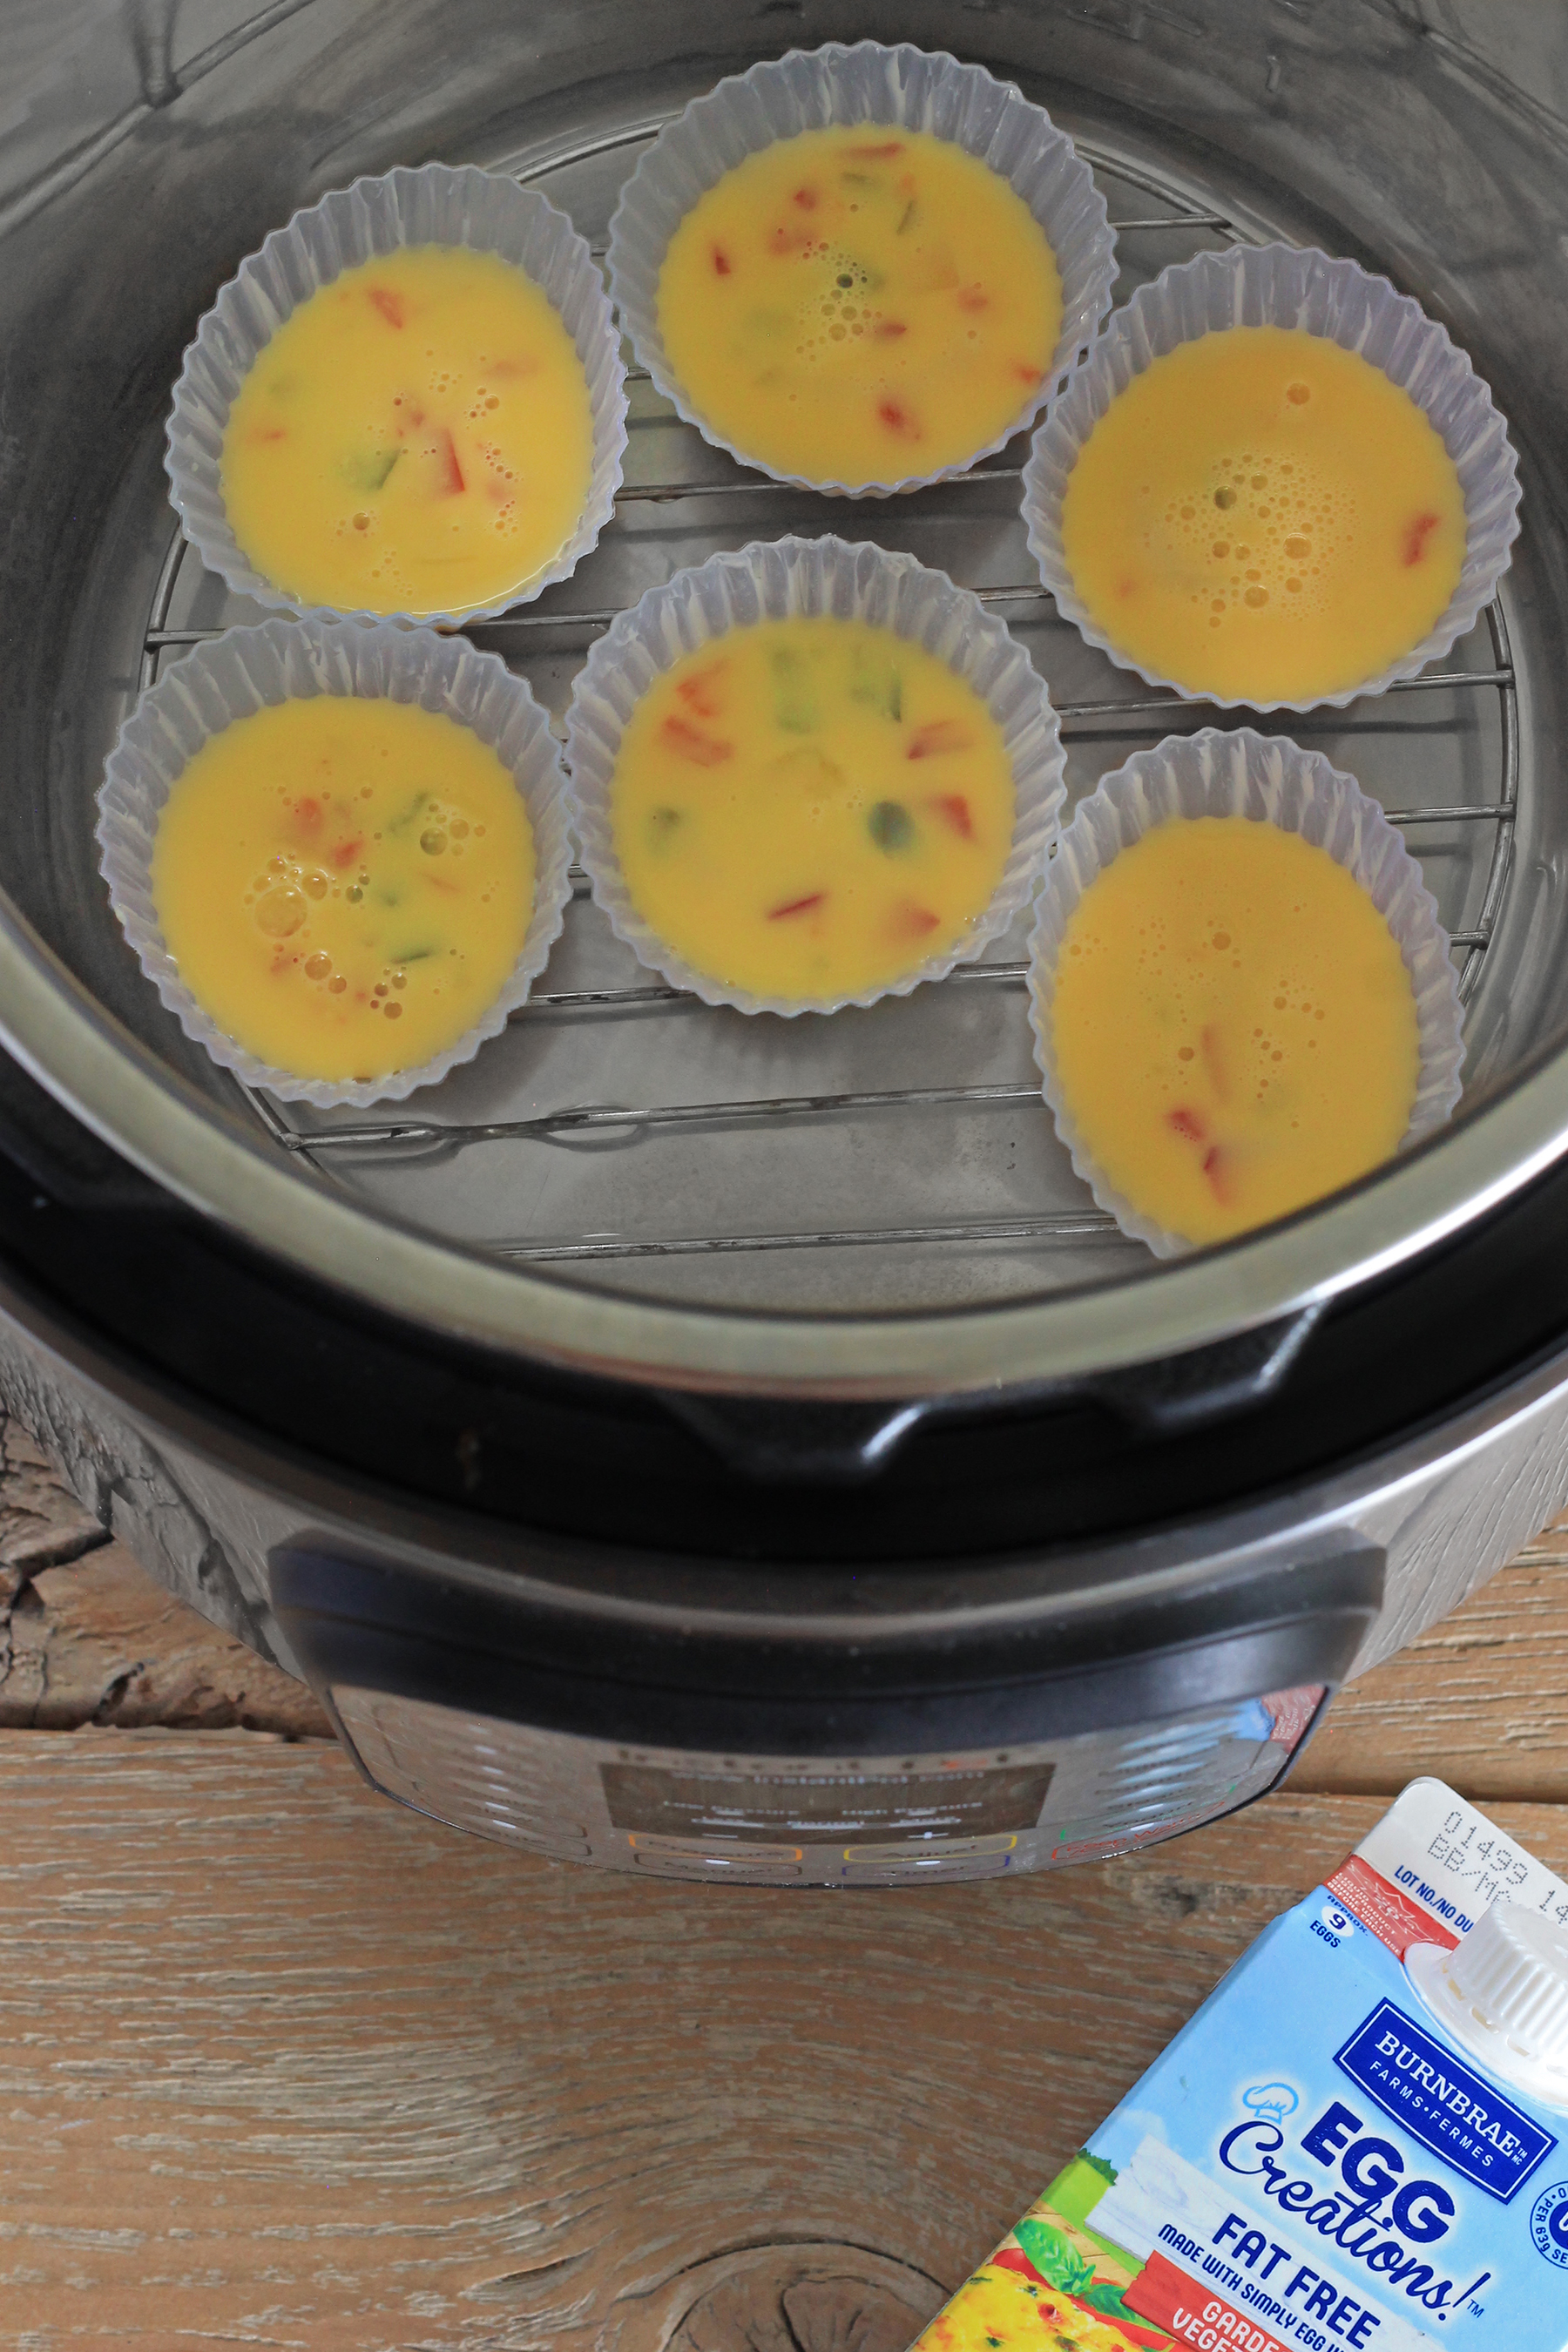 Keto Friendly 5 Minute Instant Pot Egg Muffins